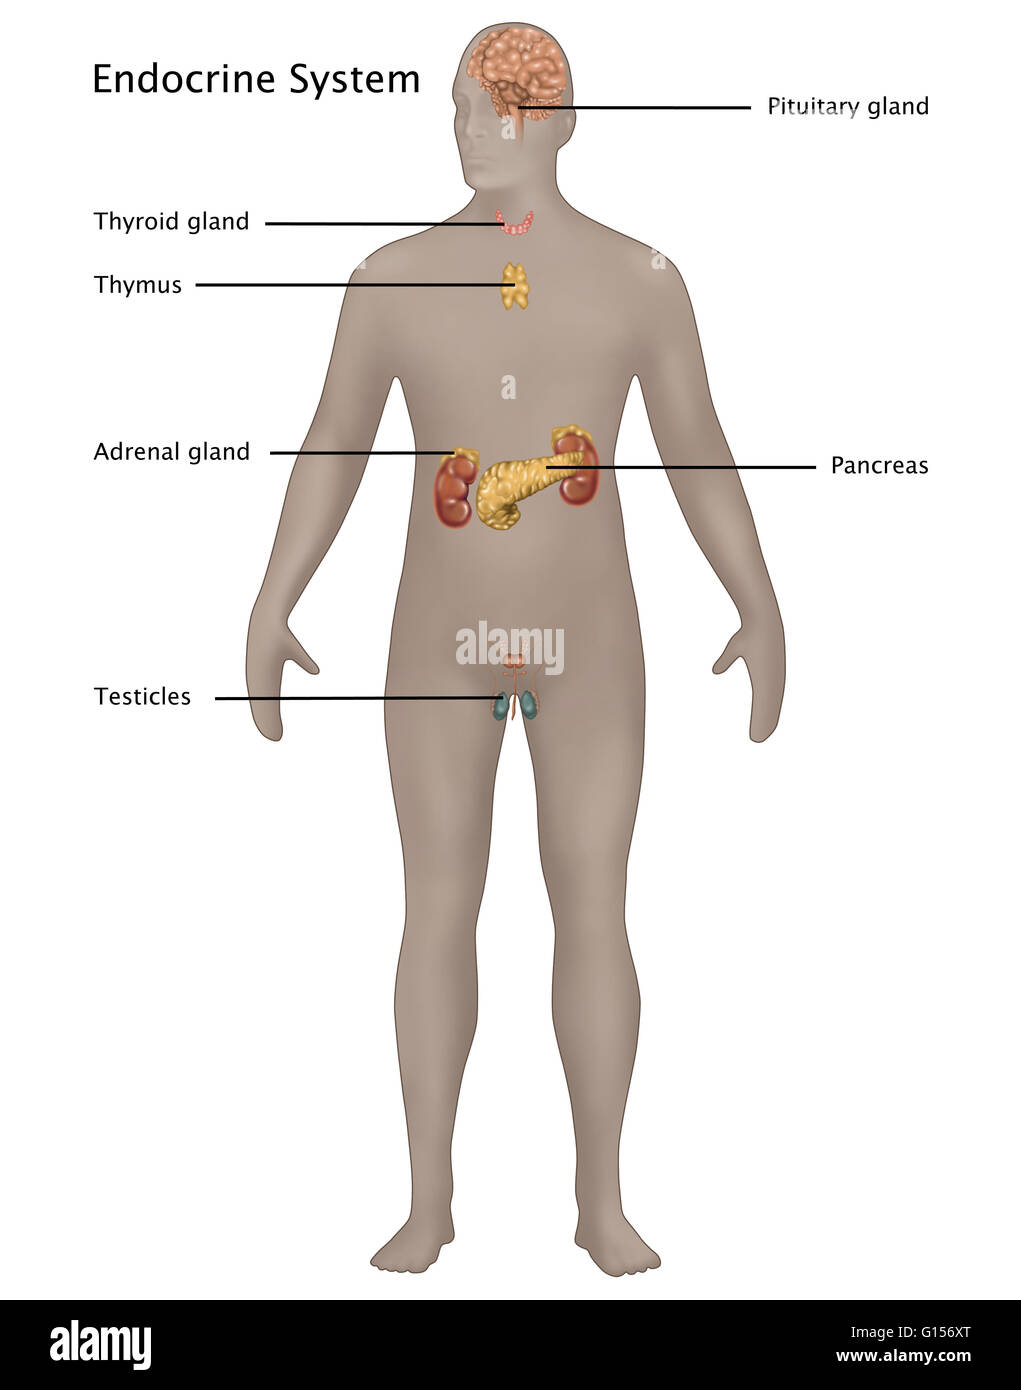 Illustration of the endocrine system in the male anatomy ...